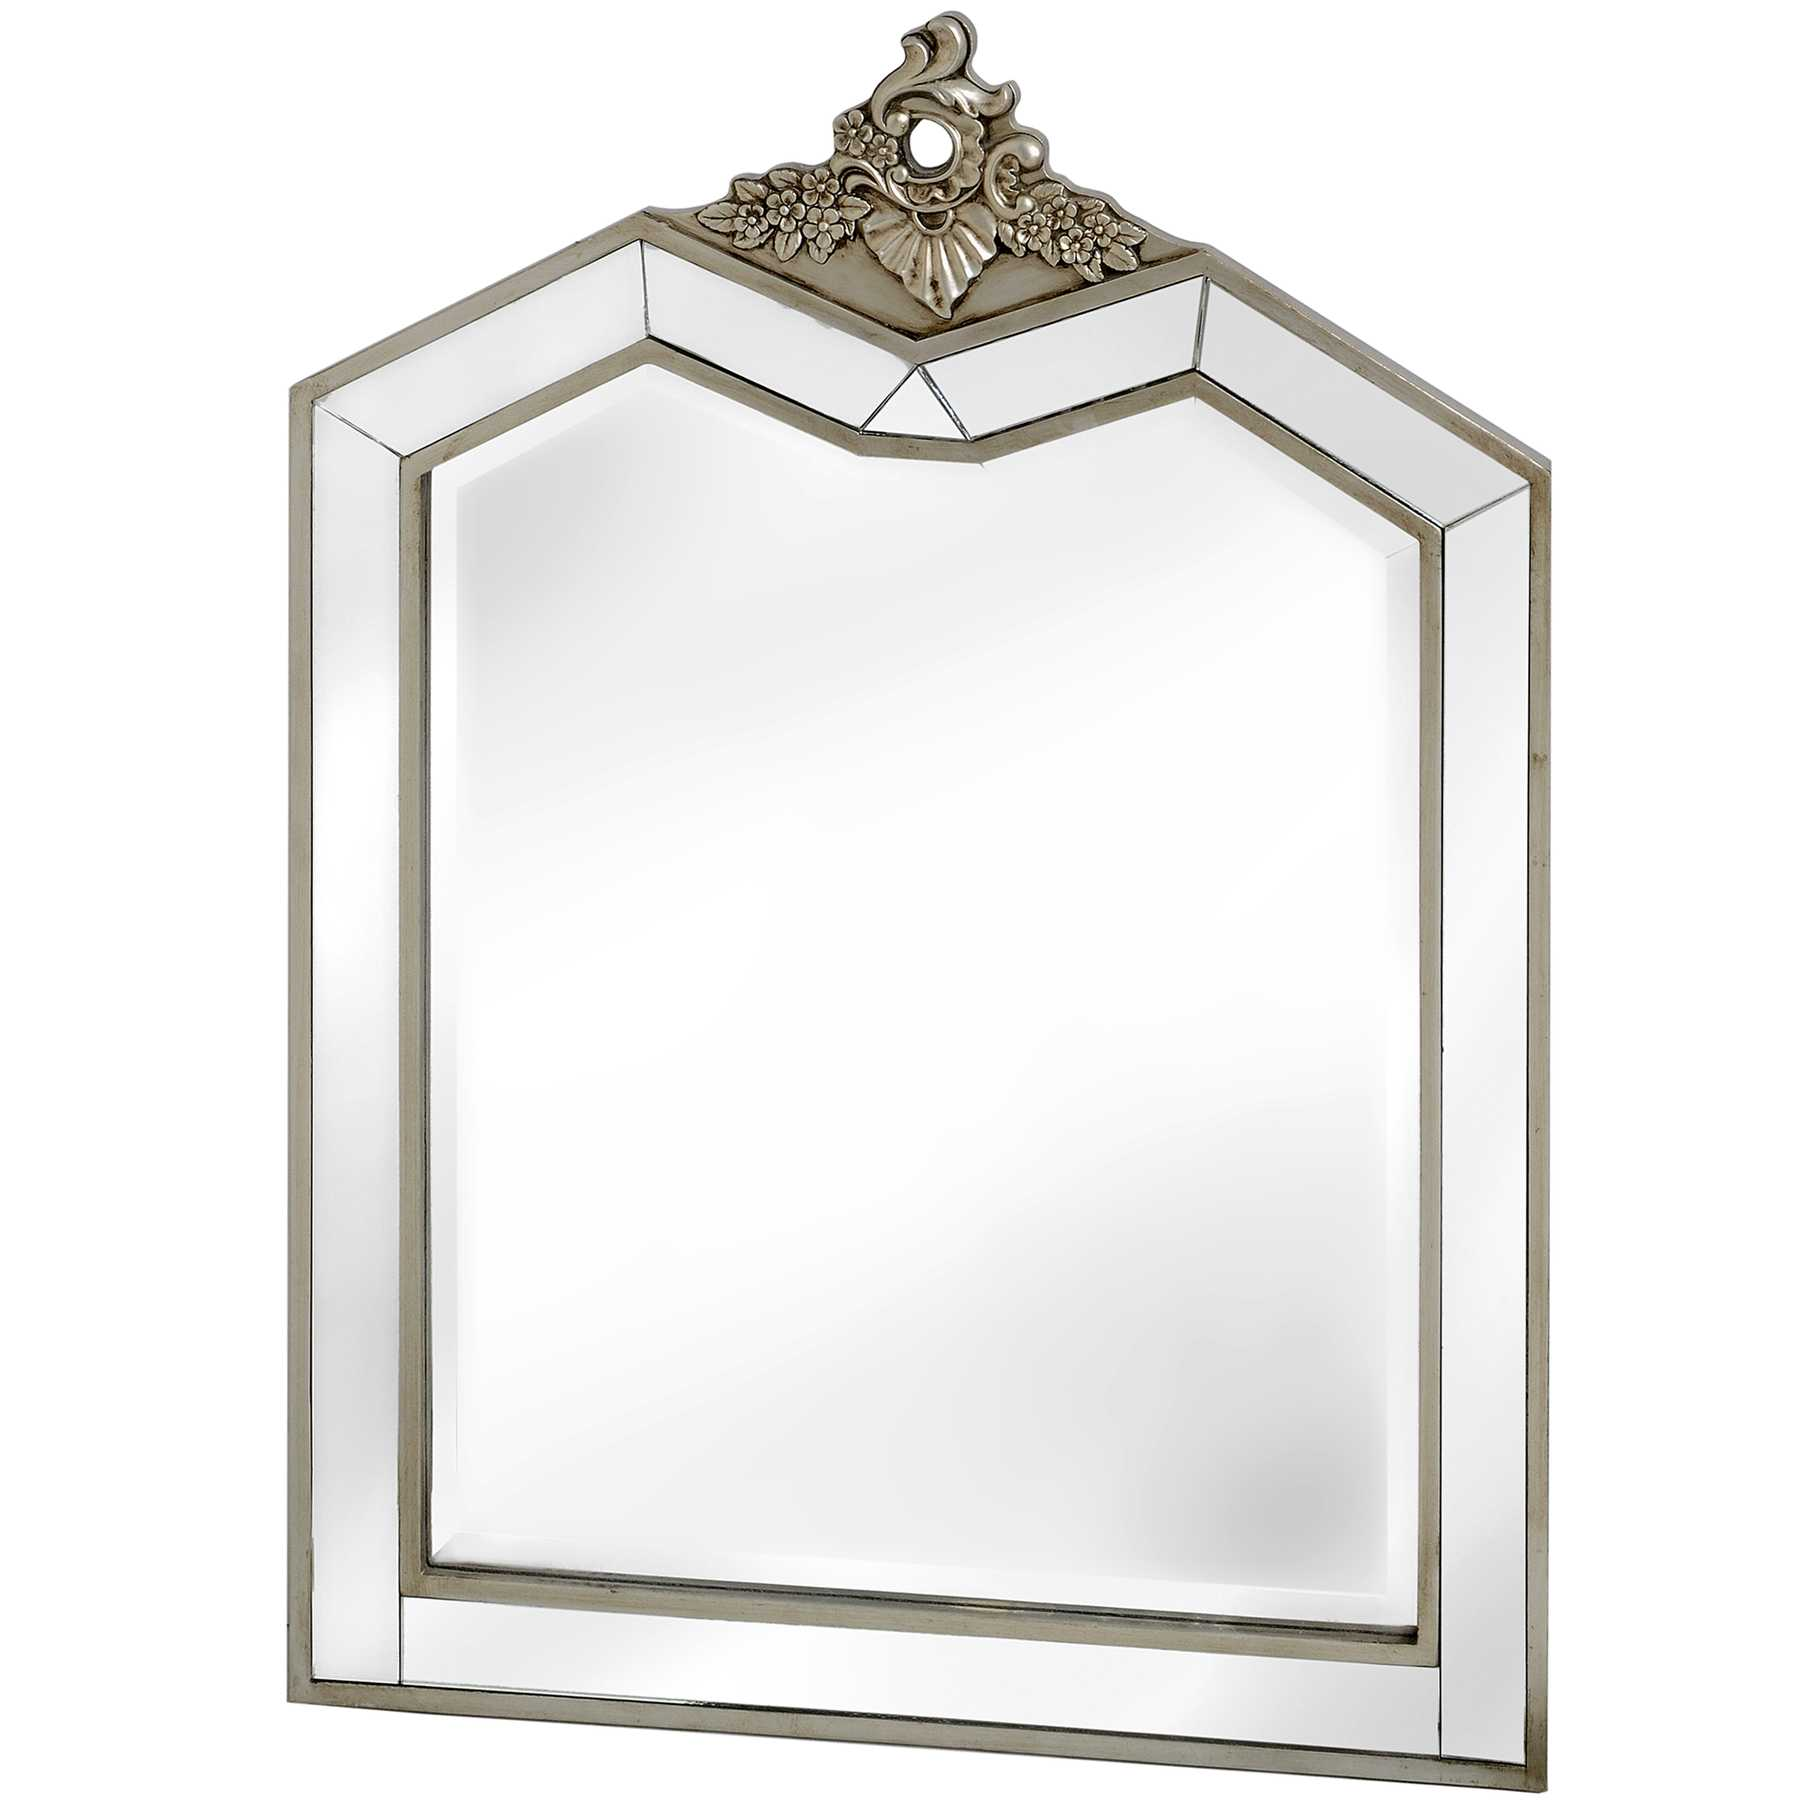 Argente Dressing Table/ Wall Mirror